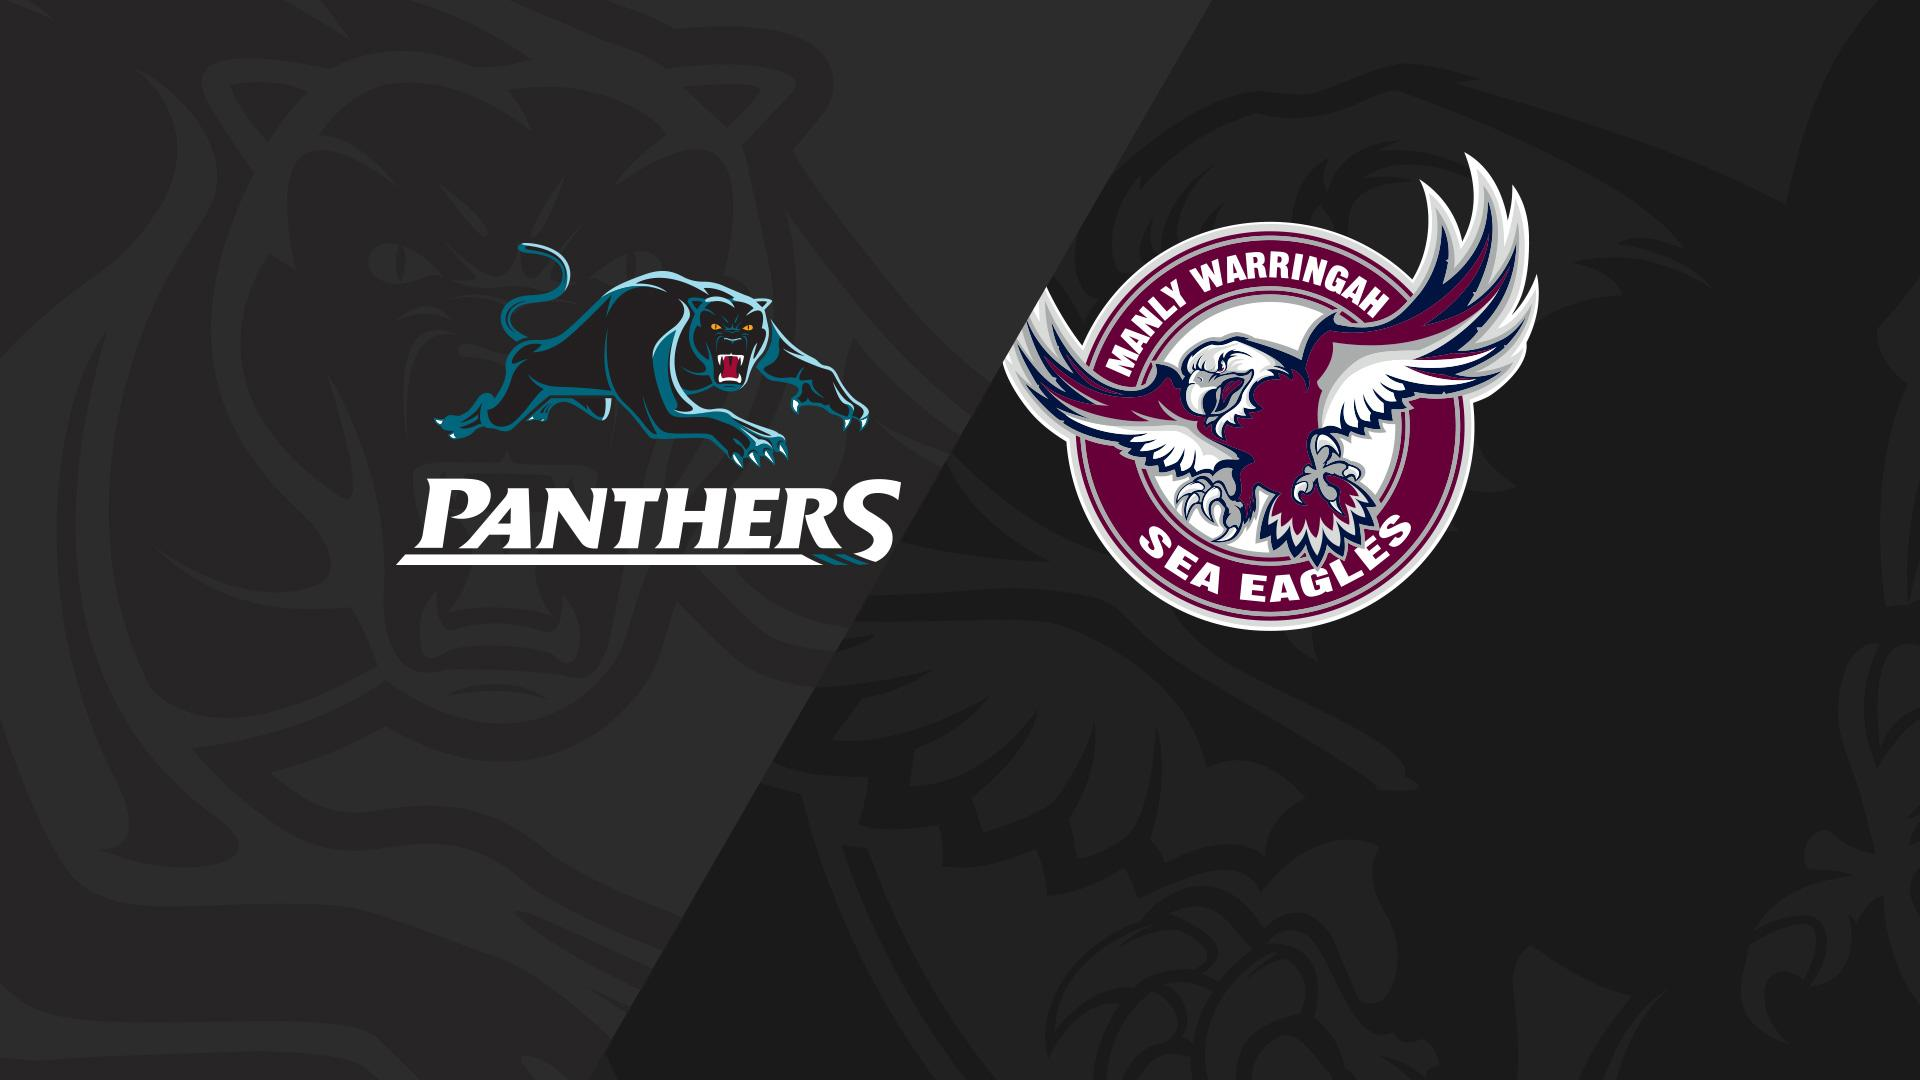 Full Match Replay: Panthers v Sea Eagles - Round 16, 2018